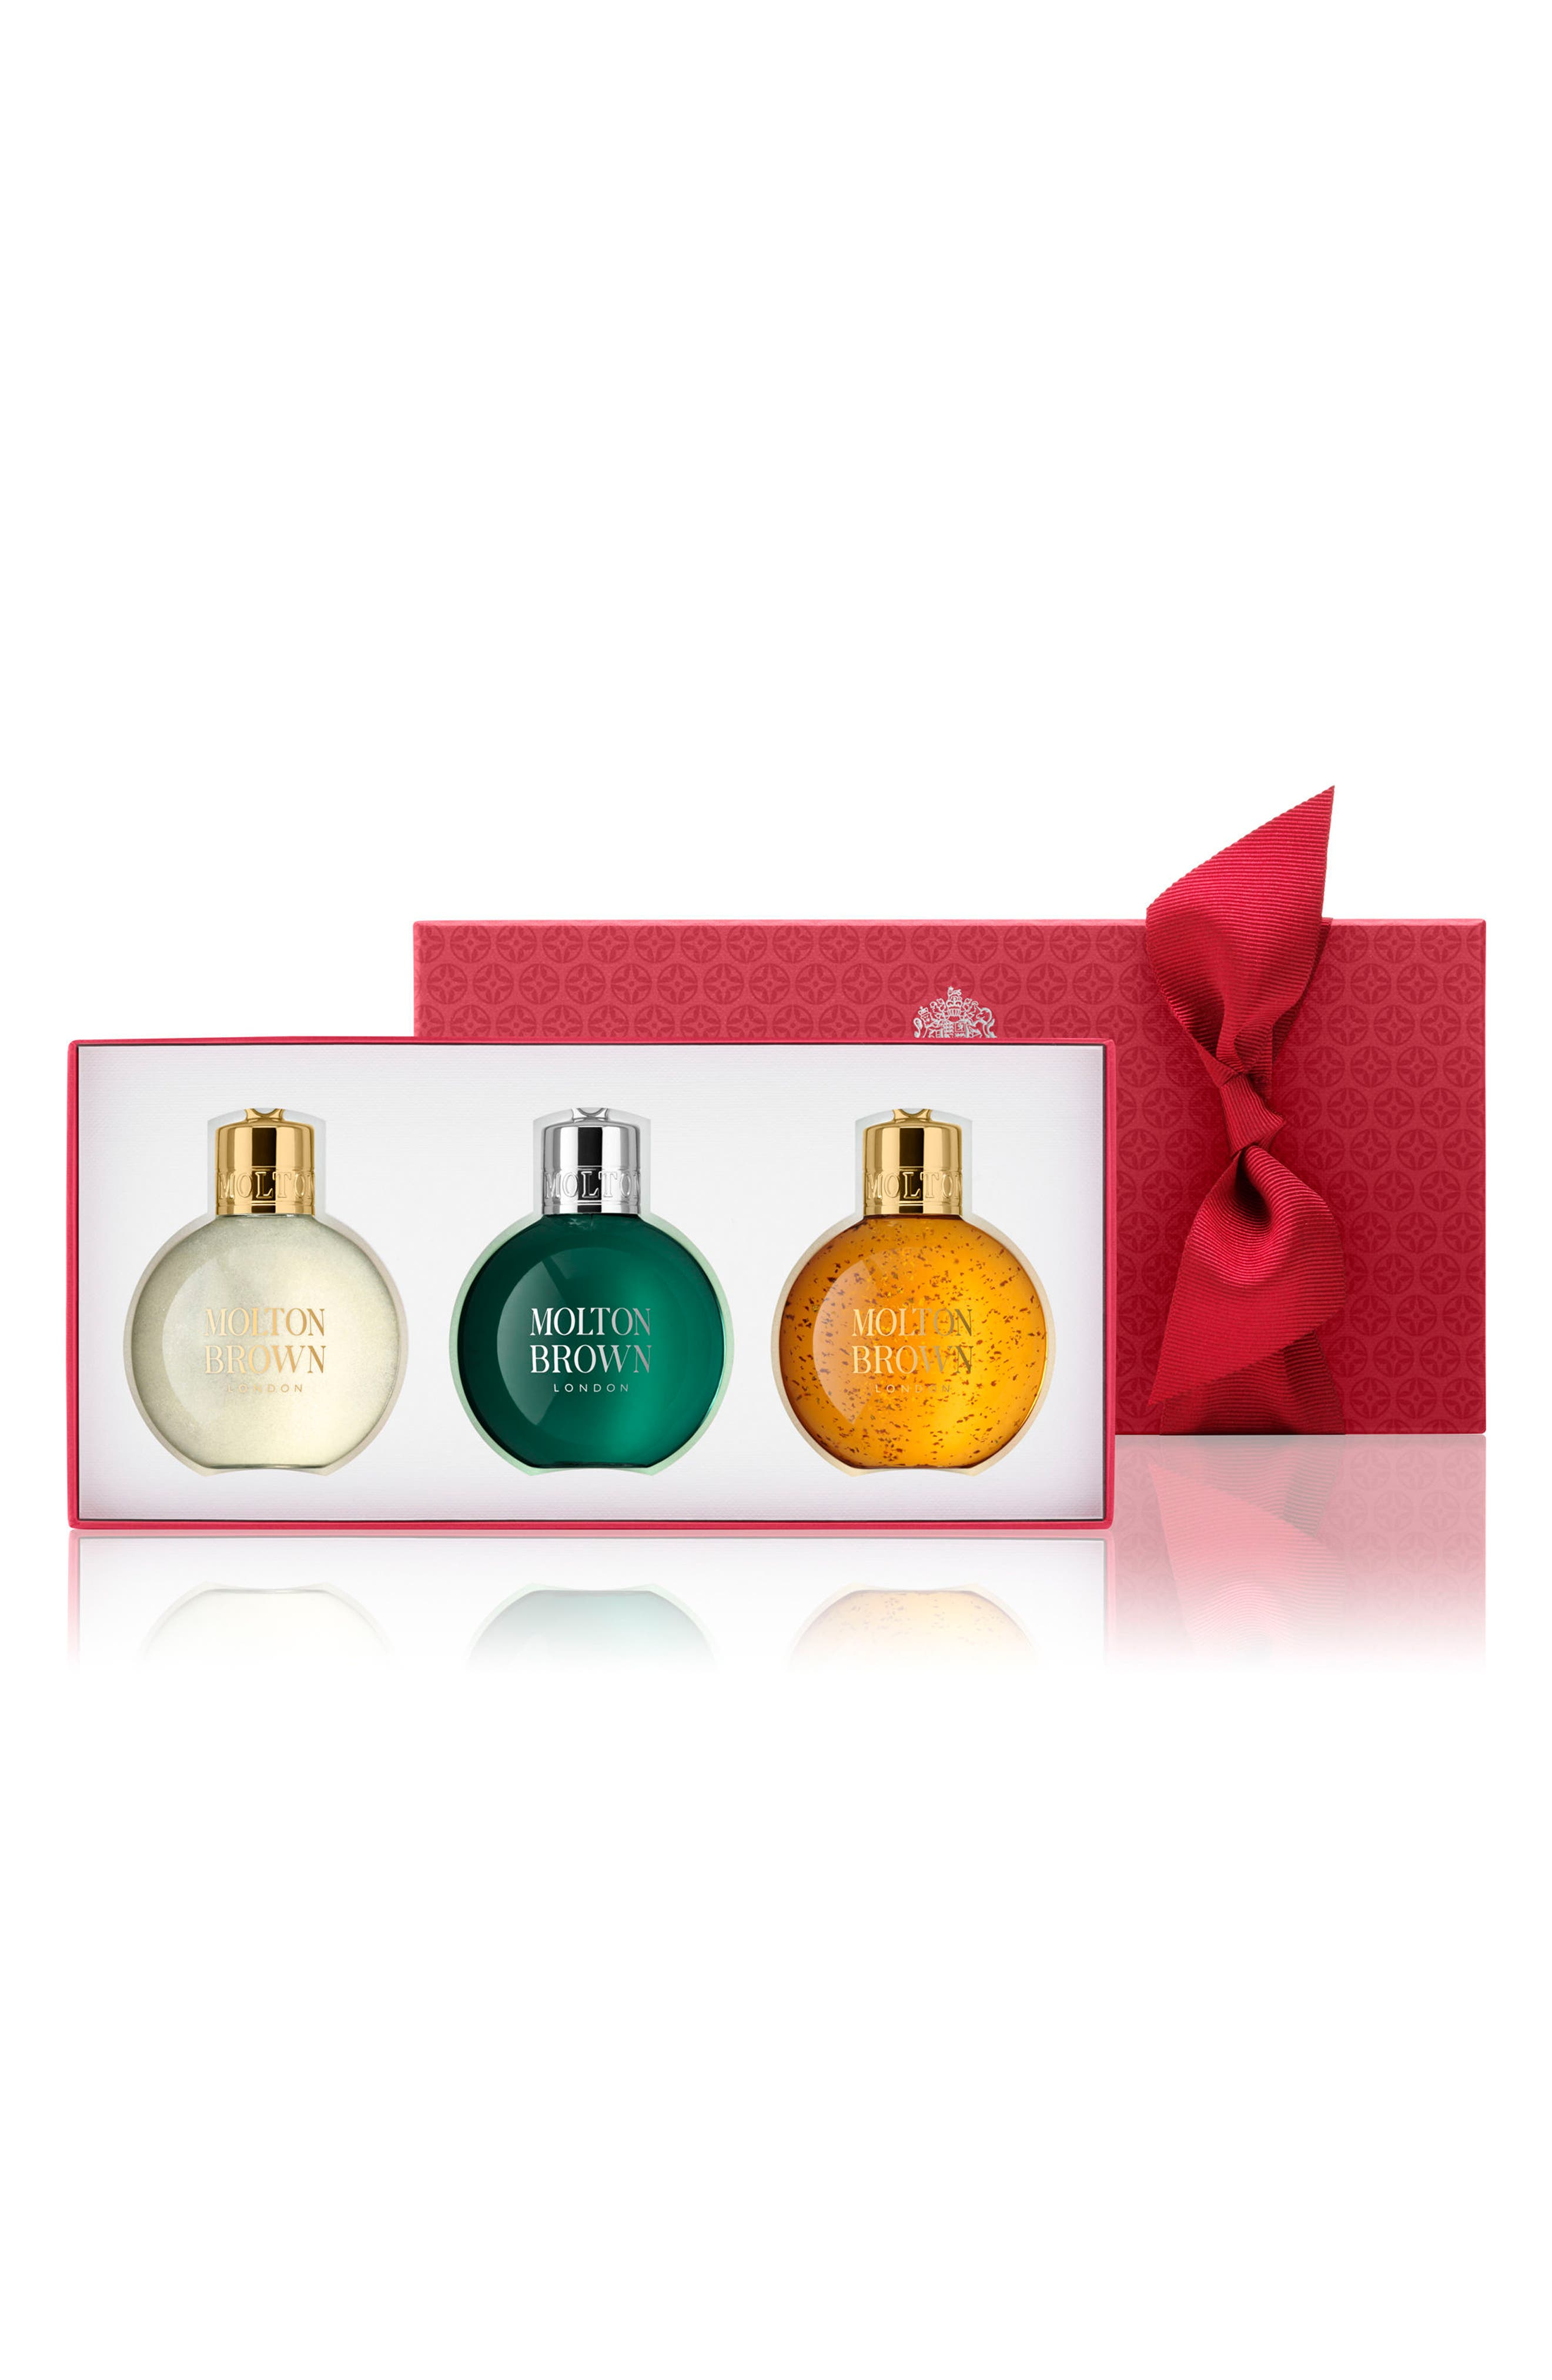 Main Image - MOLTON BROWN London Festive Bauble Set ($45 Value)